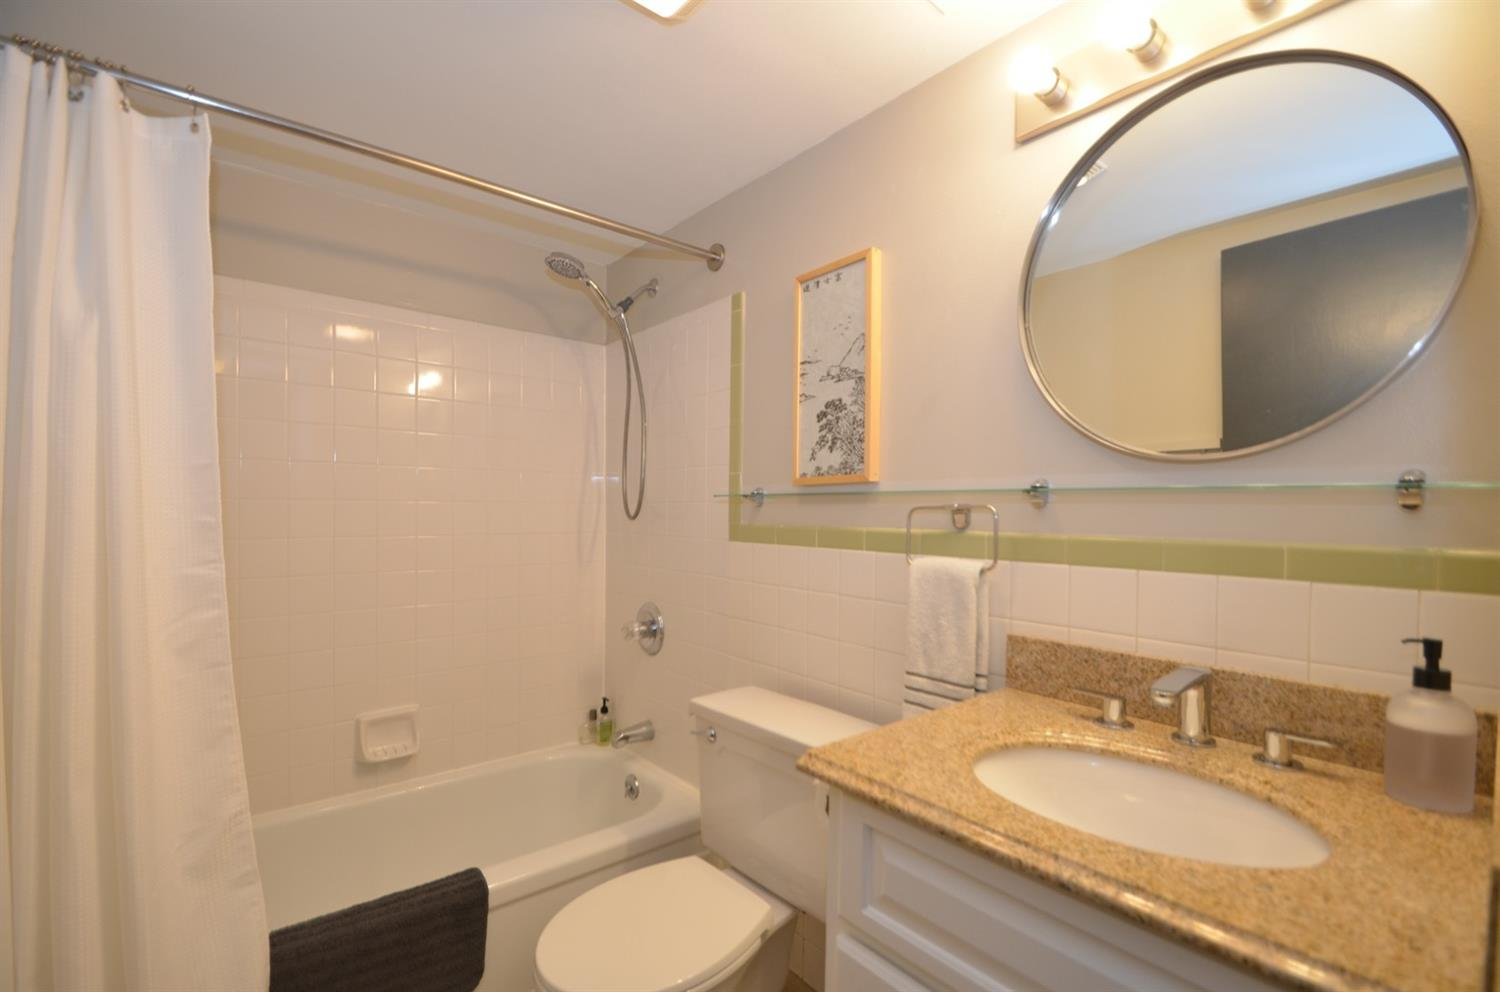 Nicely updated bath.